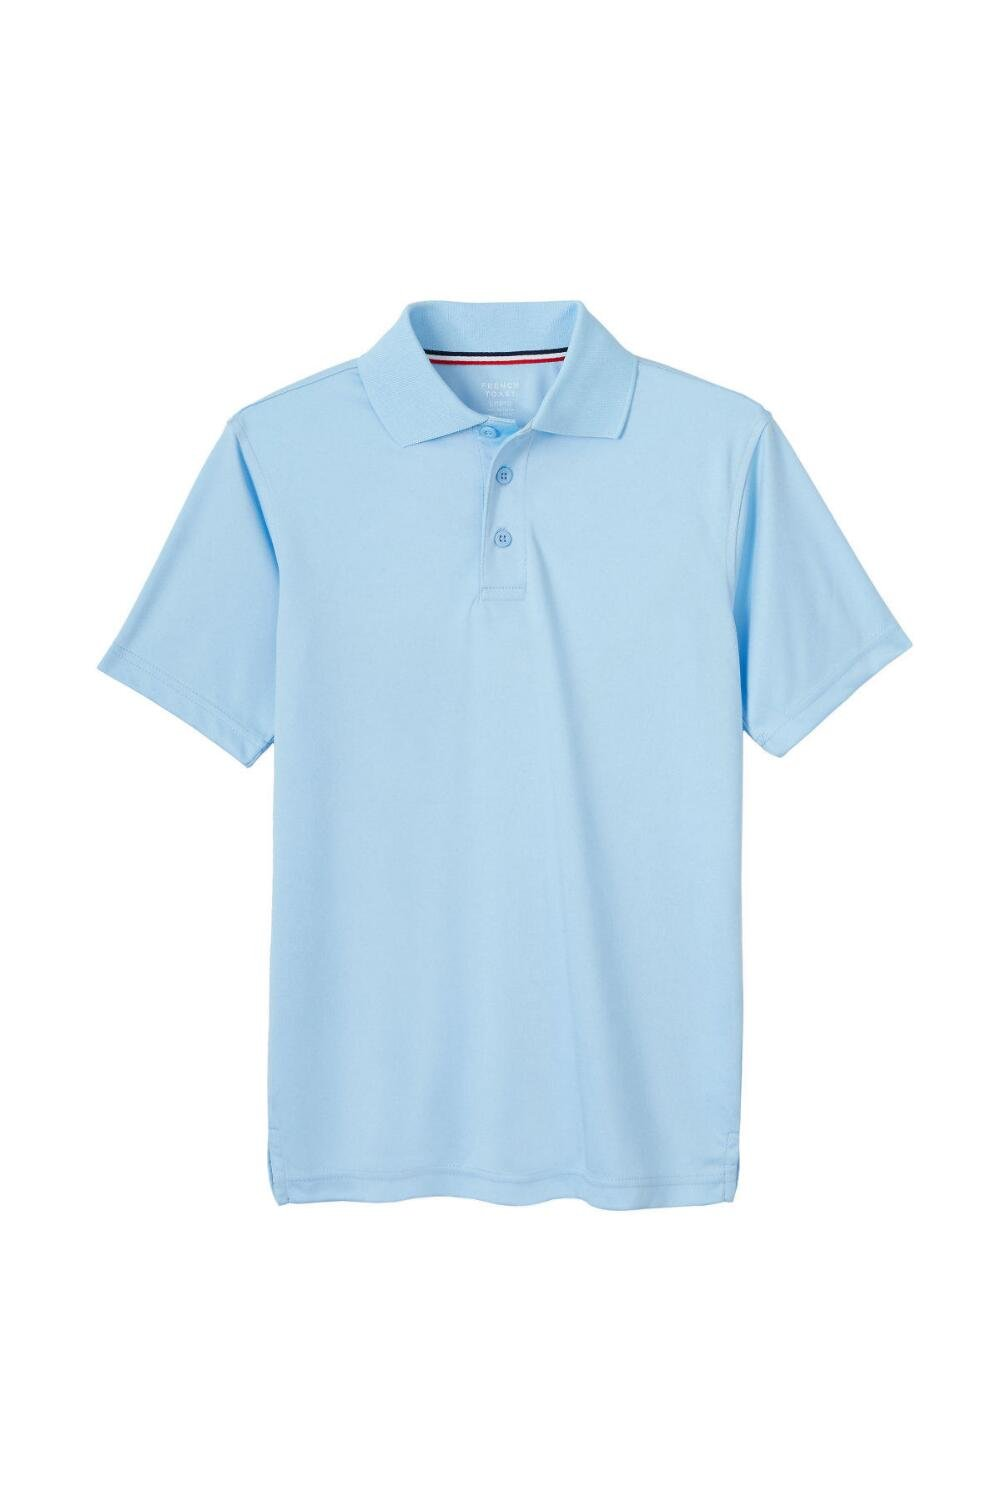 French Toast Boys' Little Short Sleeve Stretch Sport Polo, Light Blue, S (6/7)